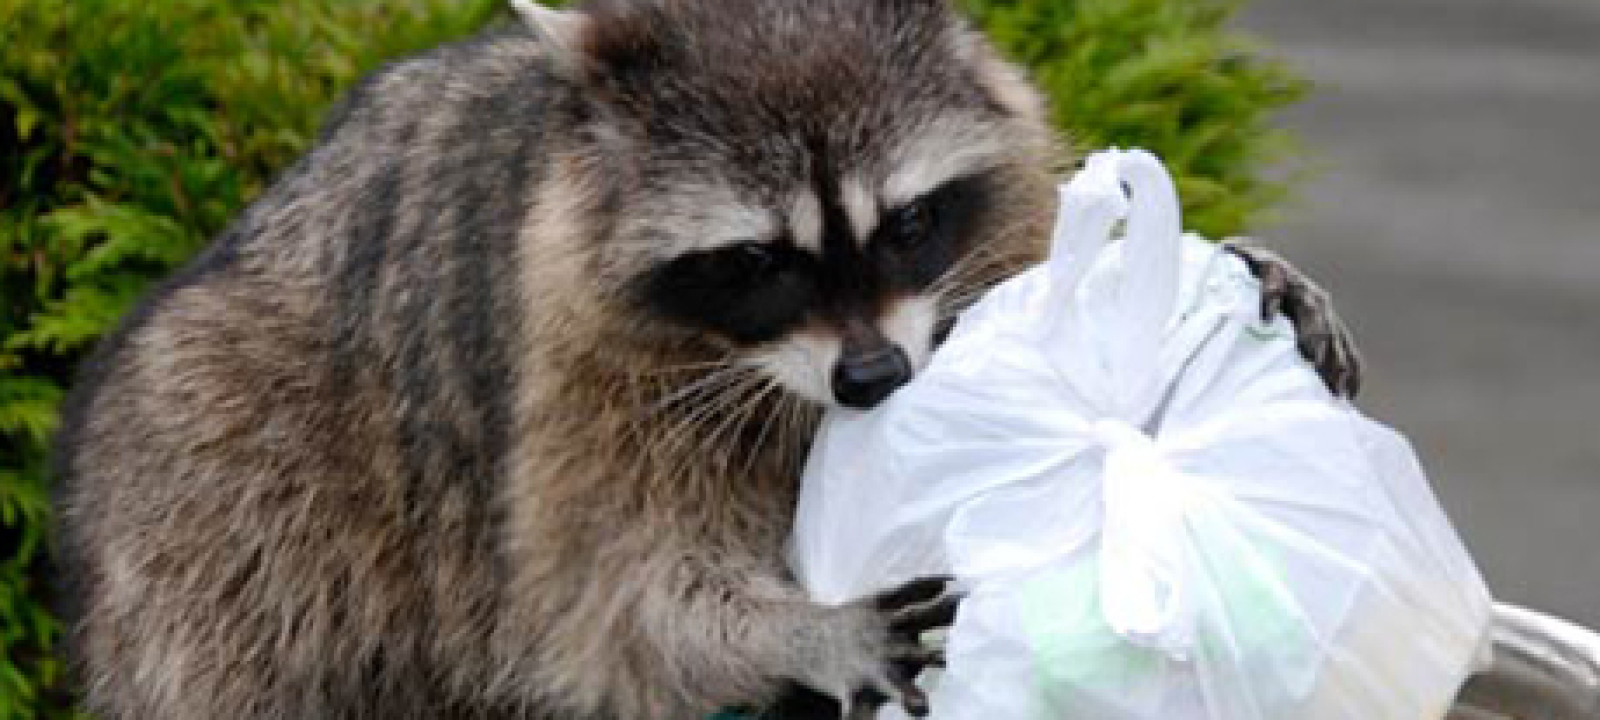 Raccoon, Garbage